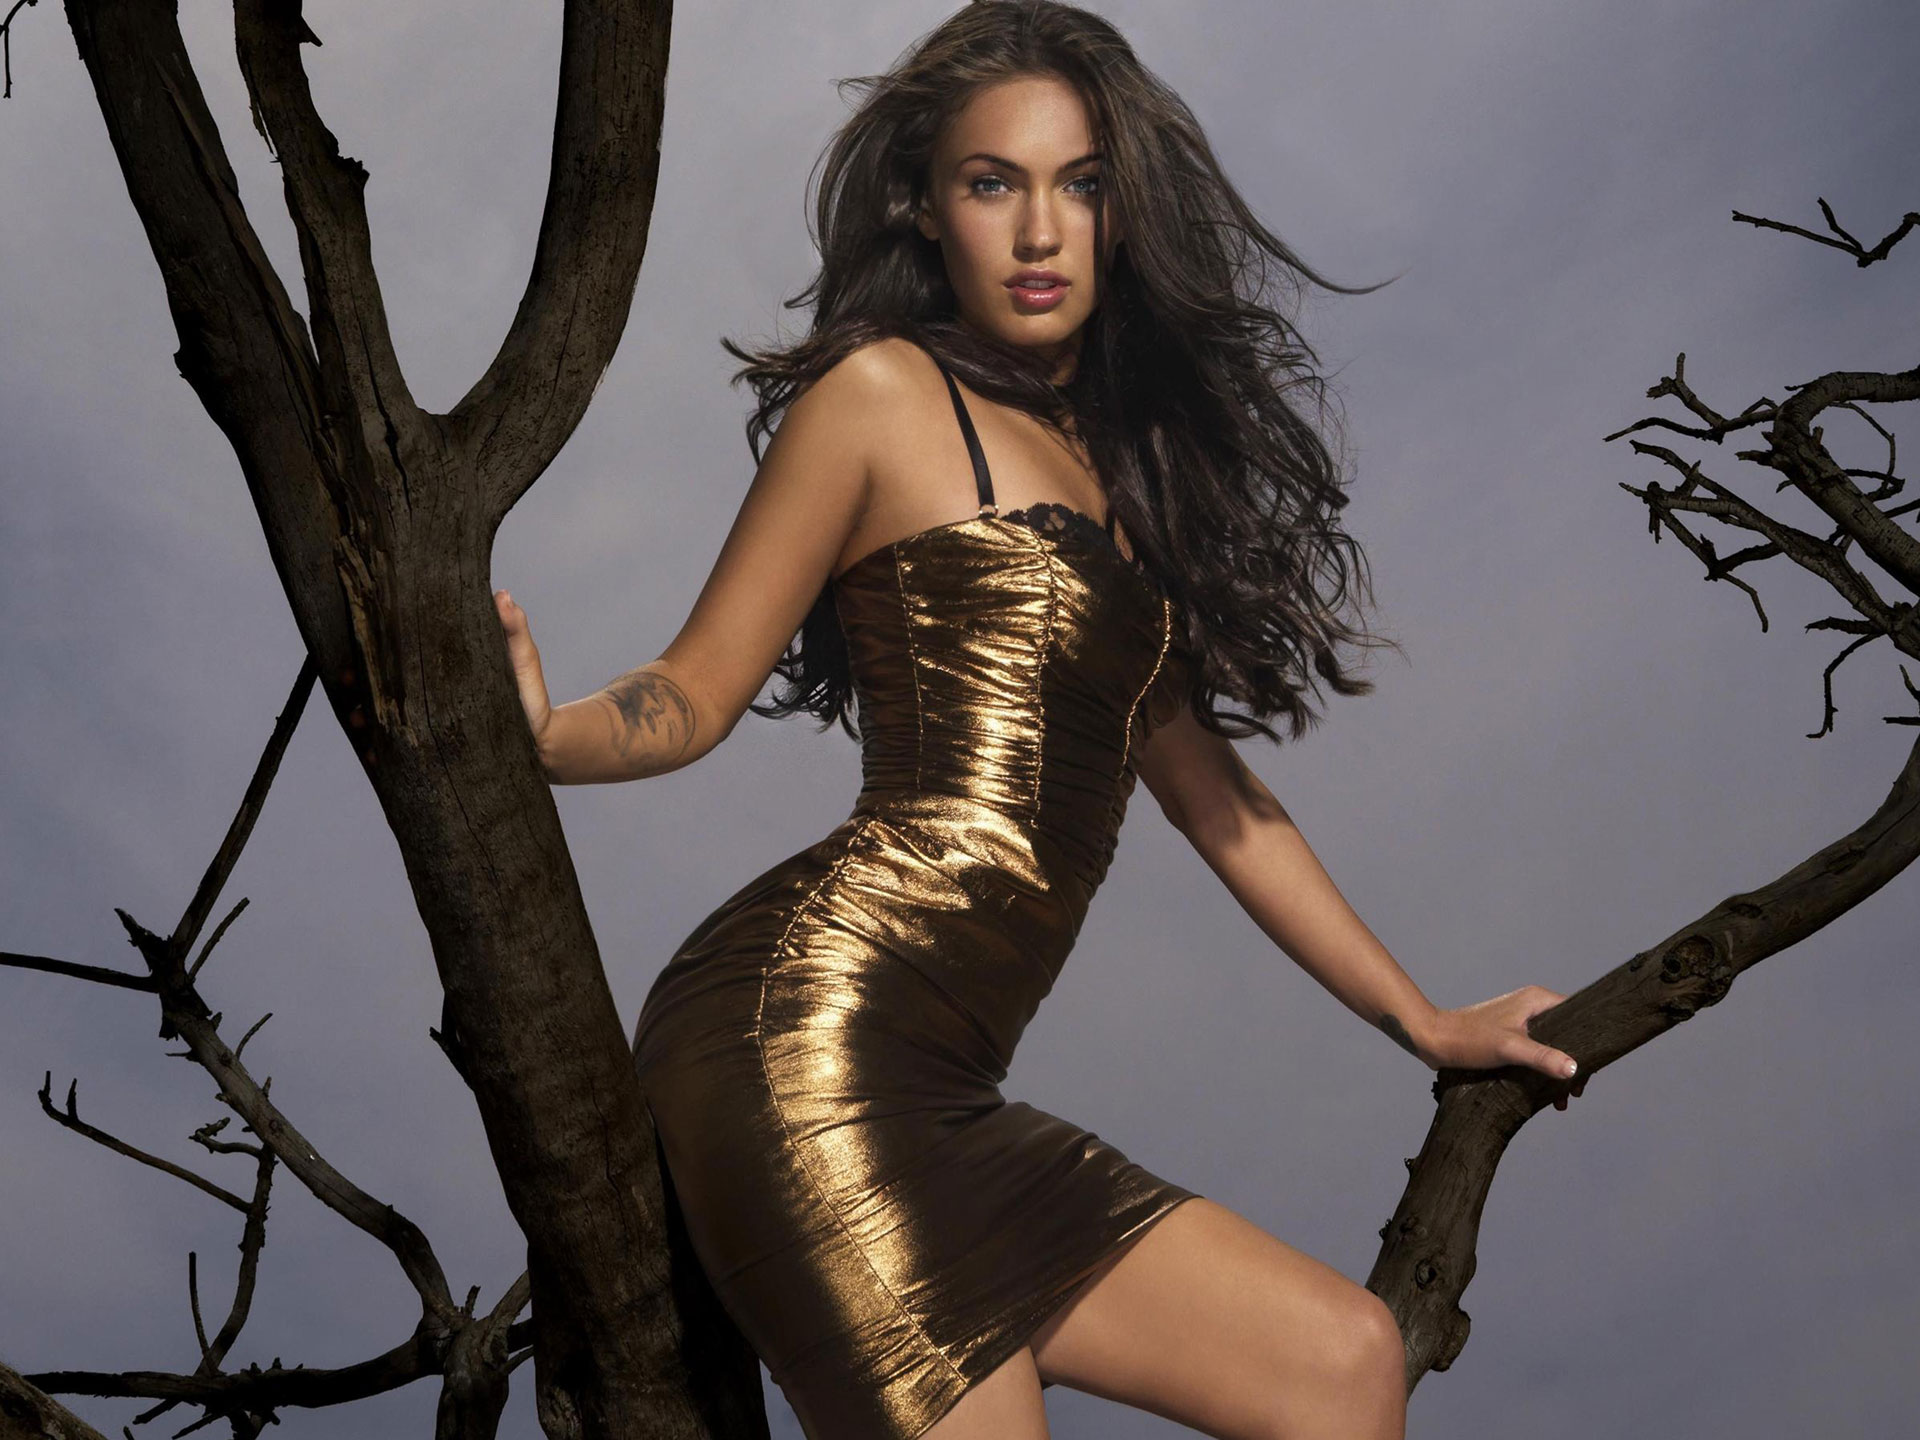 Megan Fox Latest 2010 wallpaper